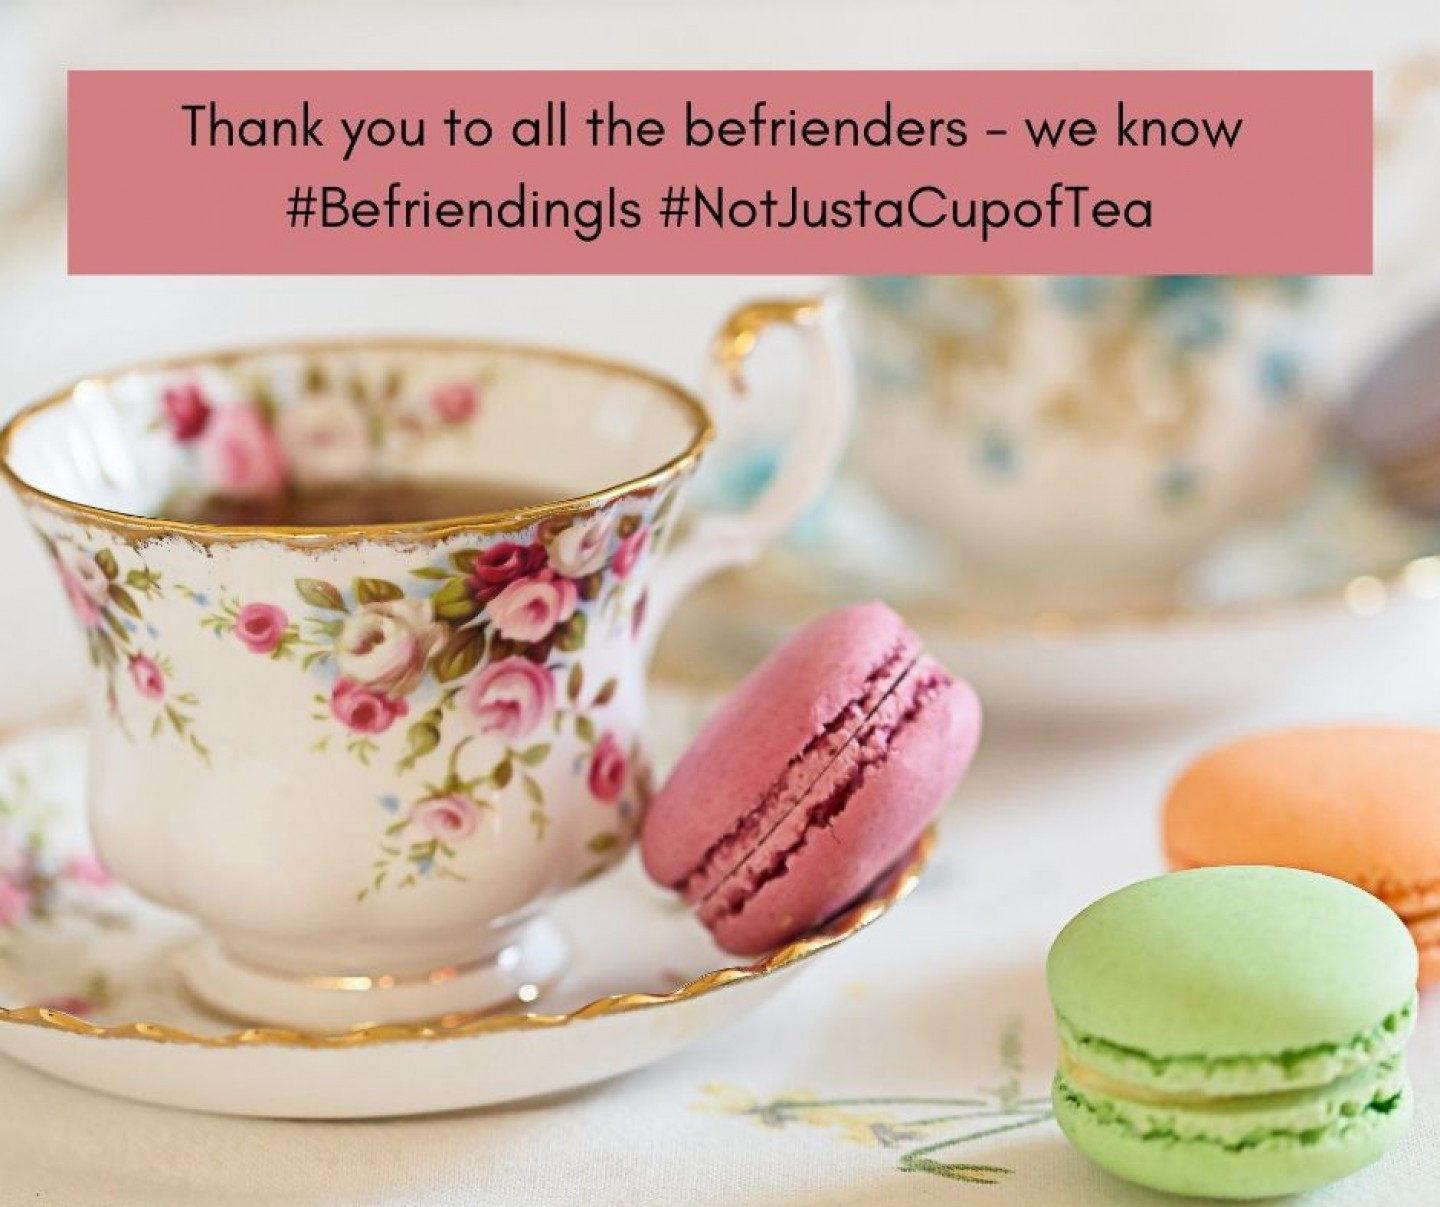 Copy of Thankyou to all the befrienders we know that #befriendingis #morethanacupoftea it's more than just a cup of